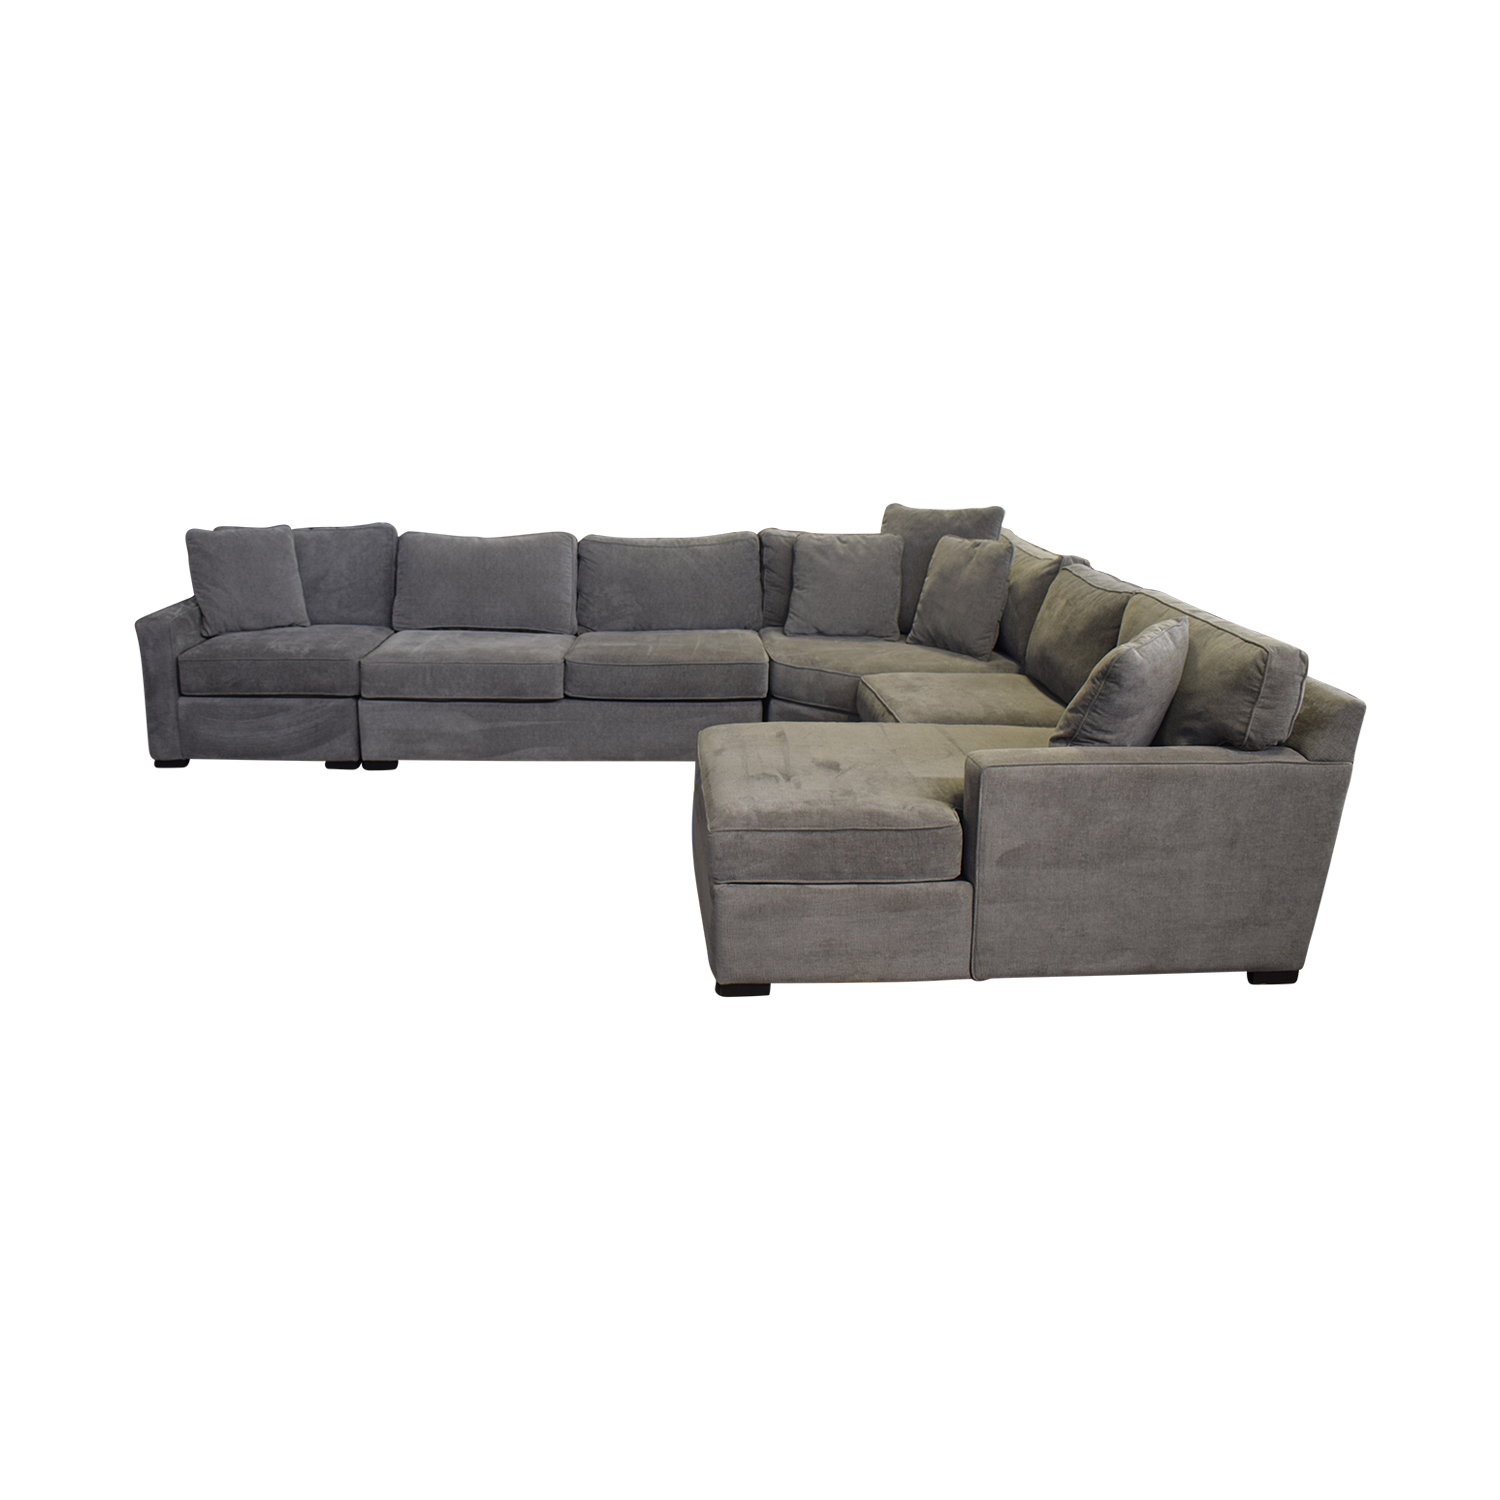 Macy's Macy's Rhyder Grey U-Shaped Chaise  Sectional price